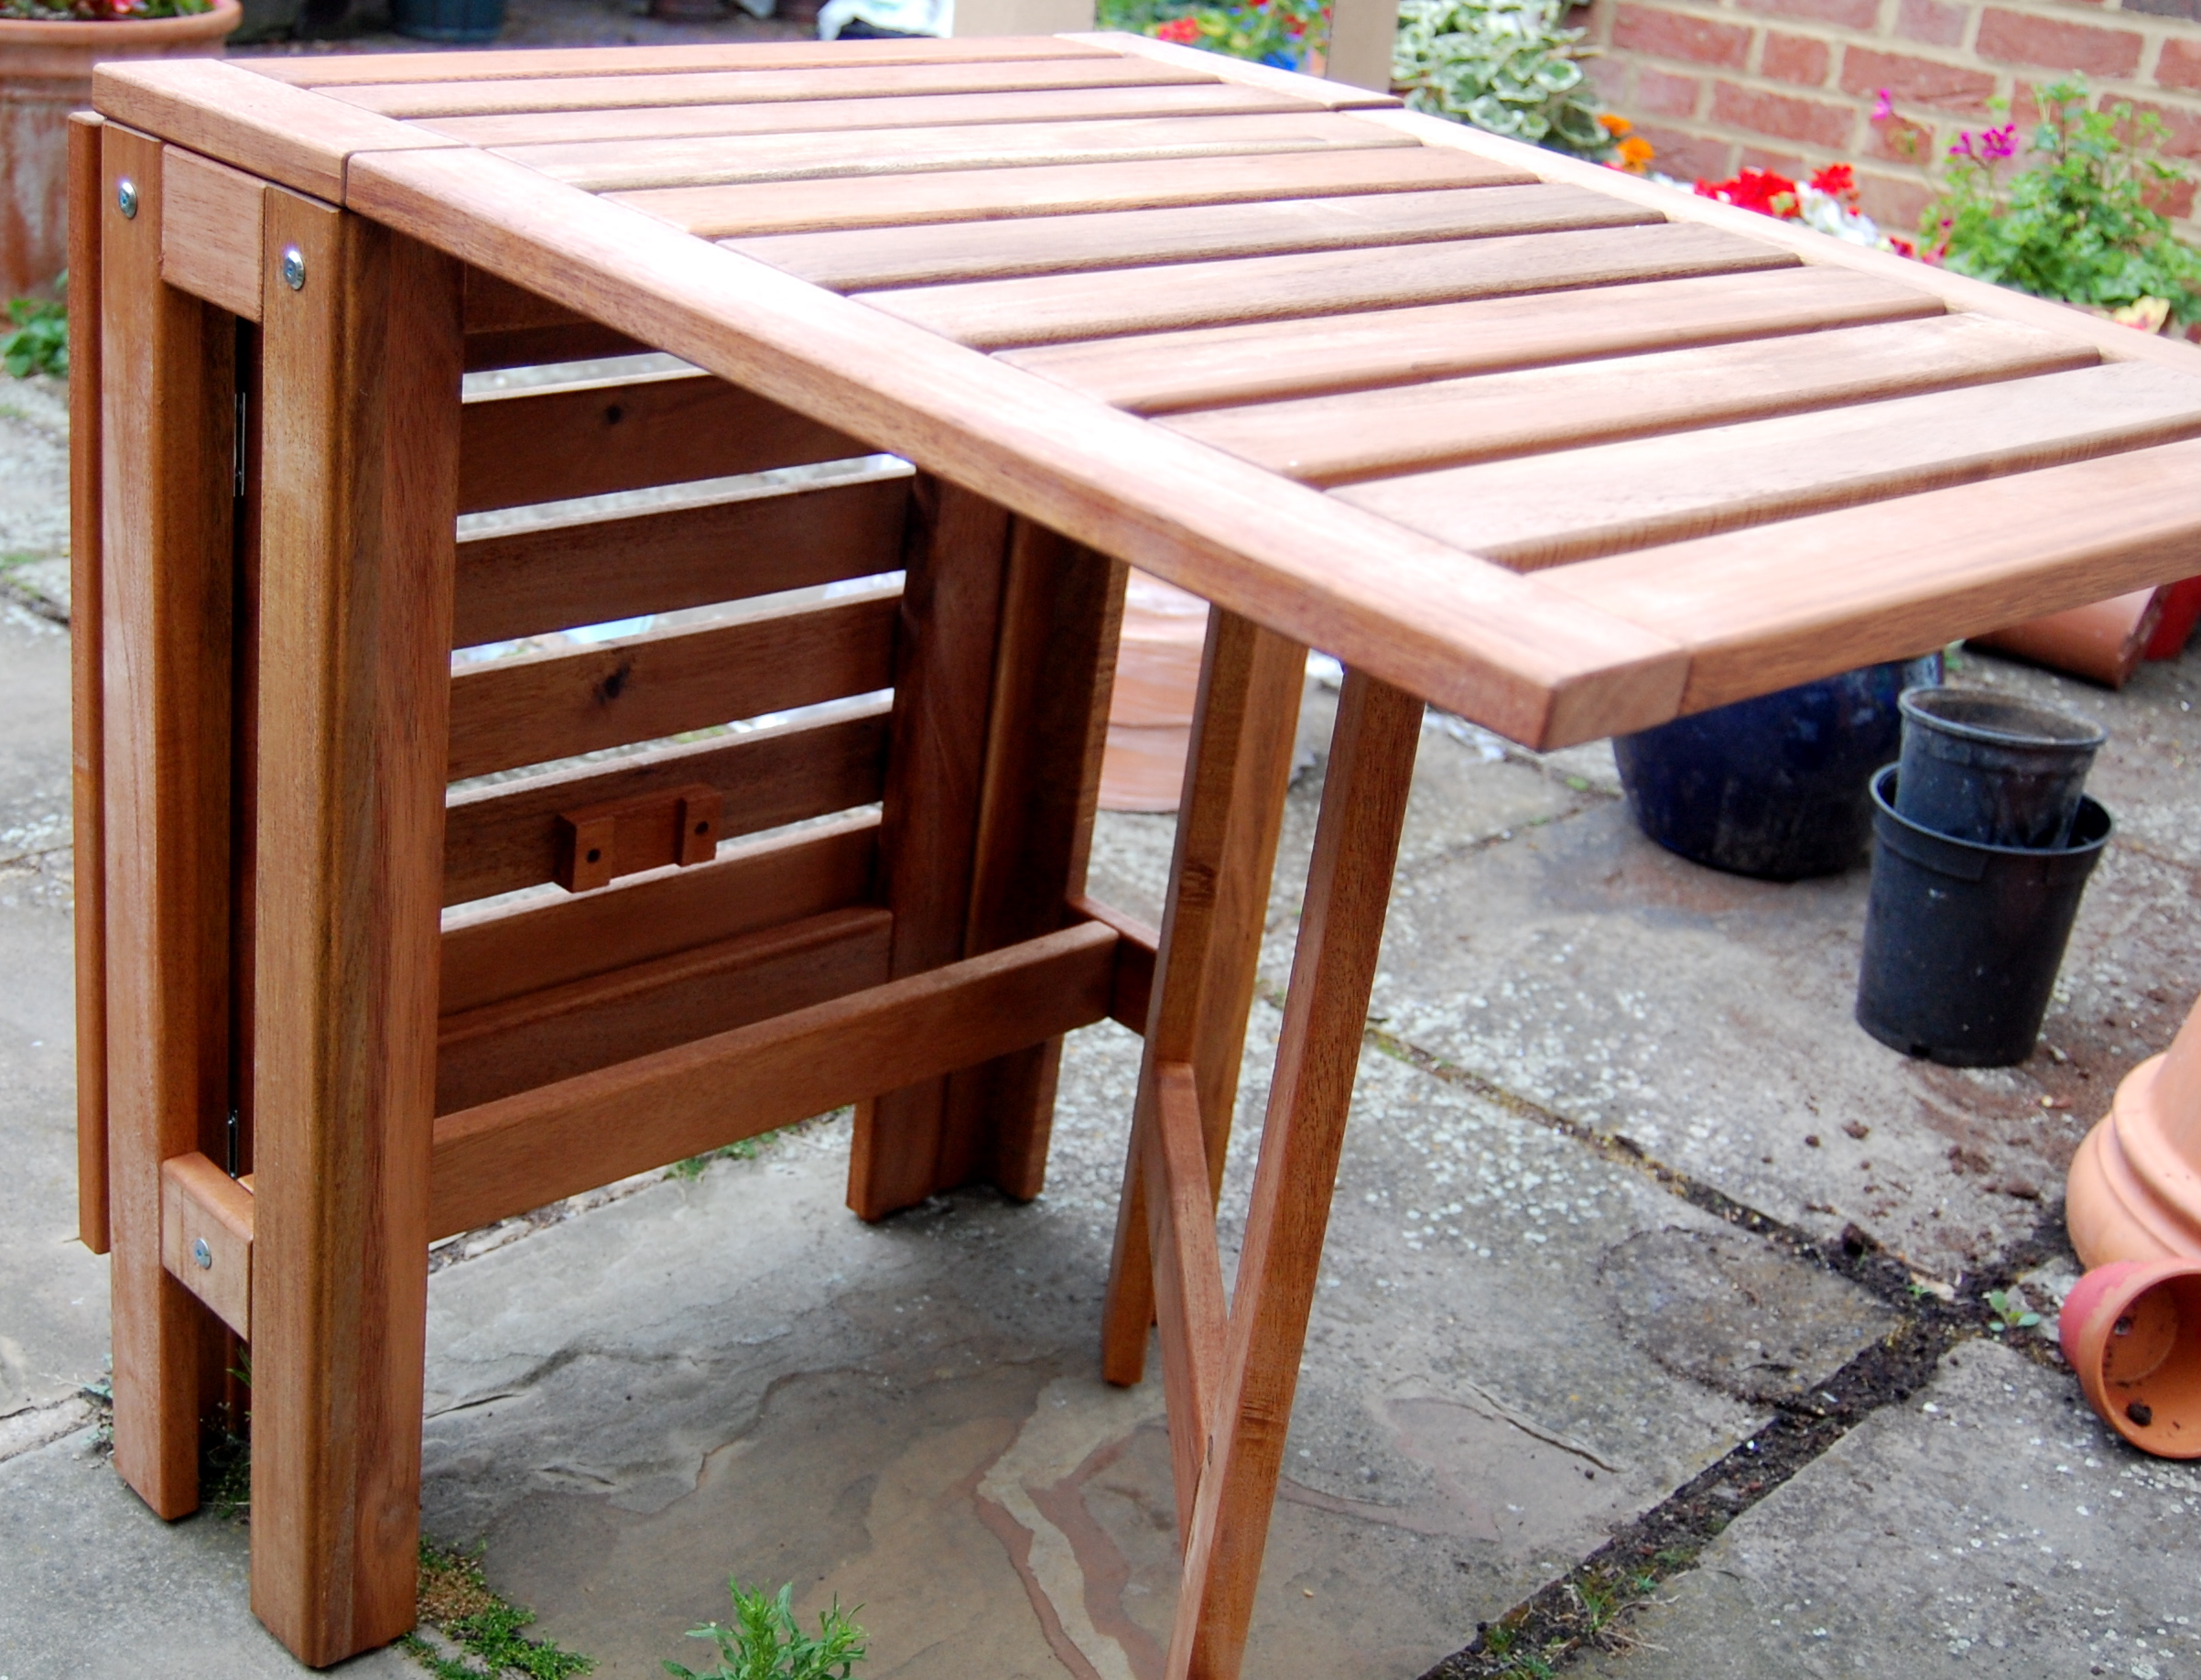 The table with one wing up